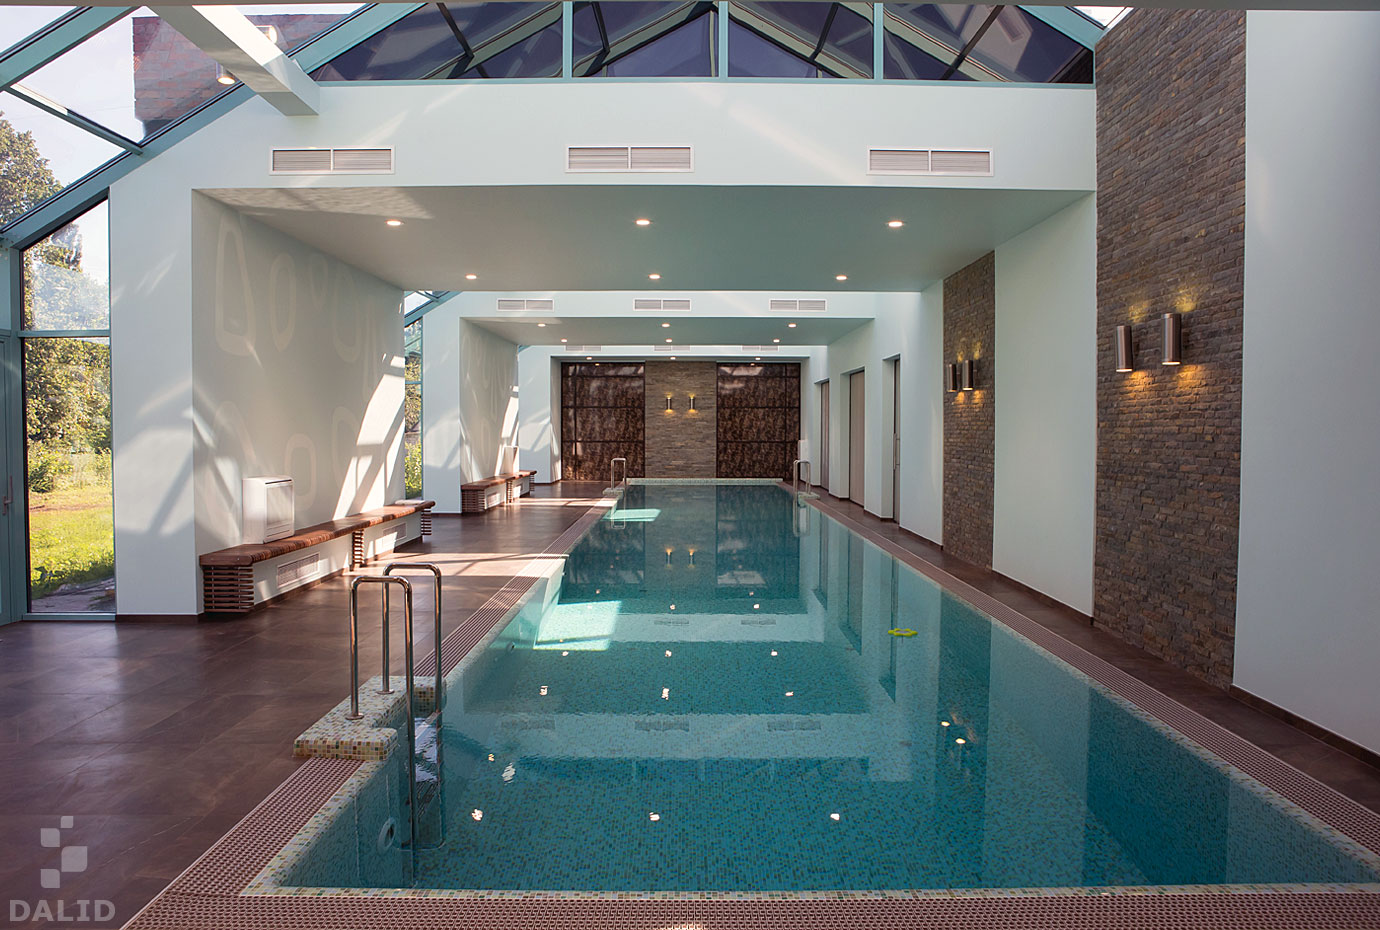 Architecture and interior of the room with a pool